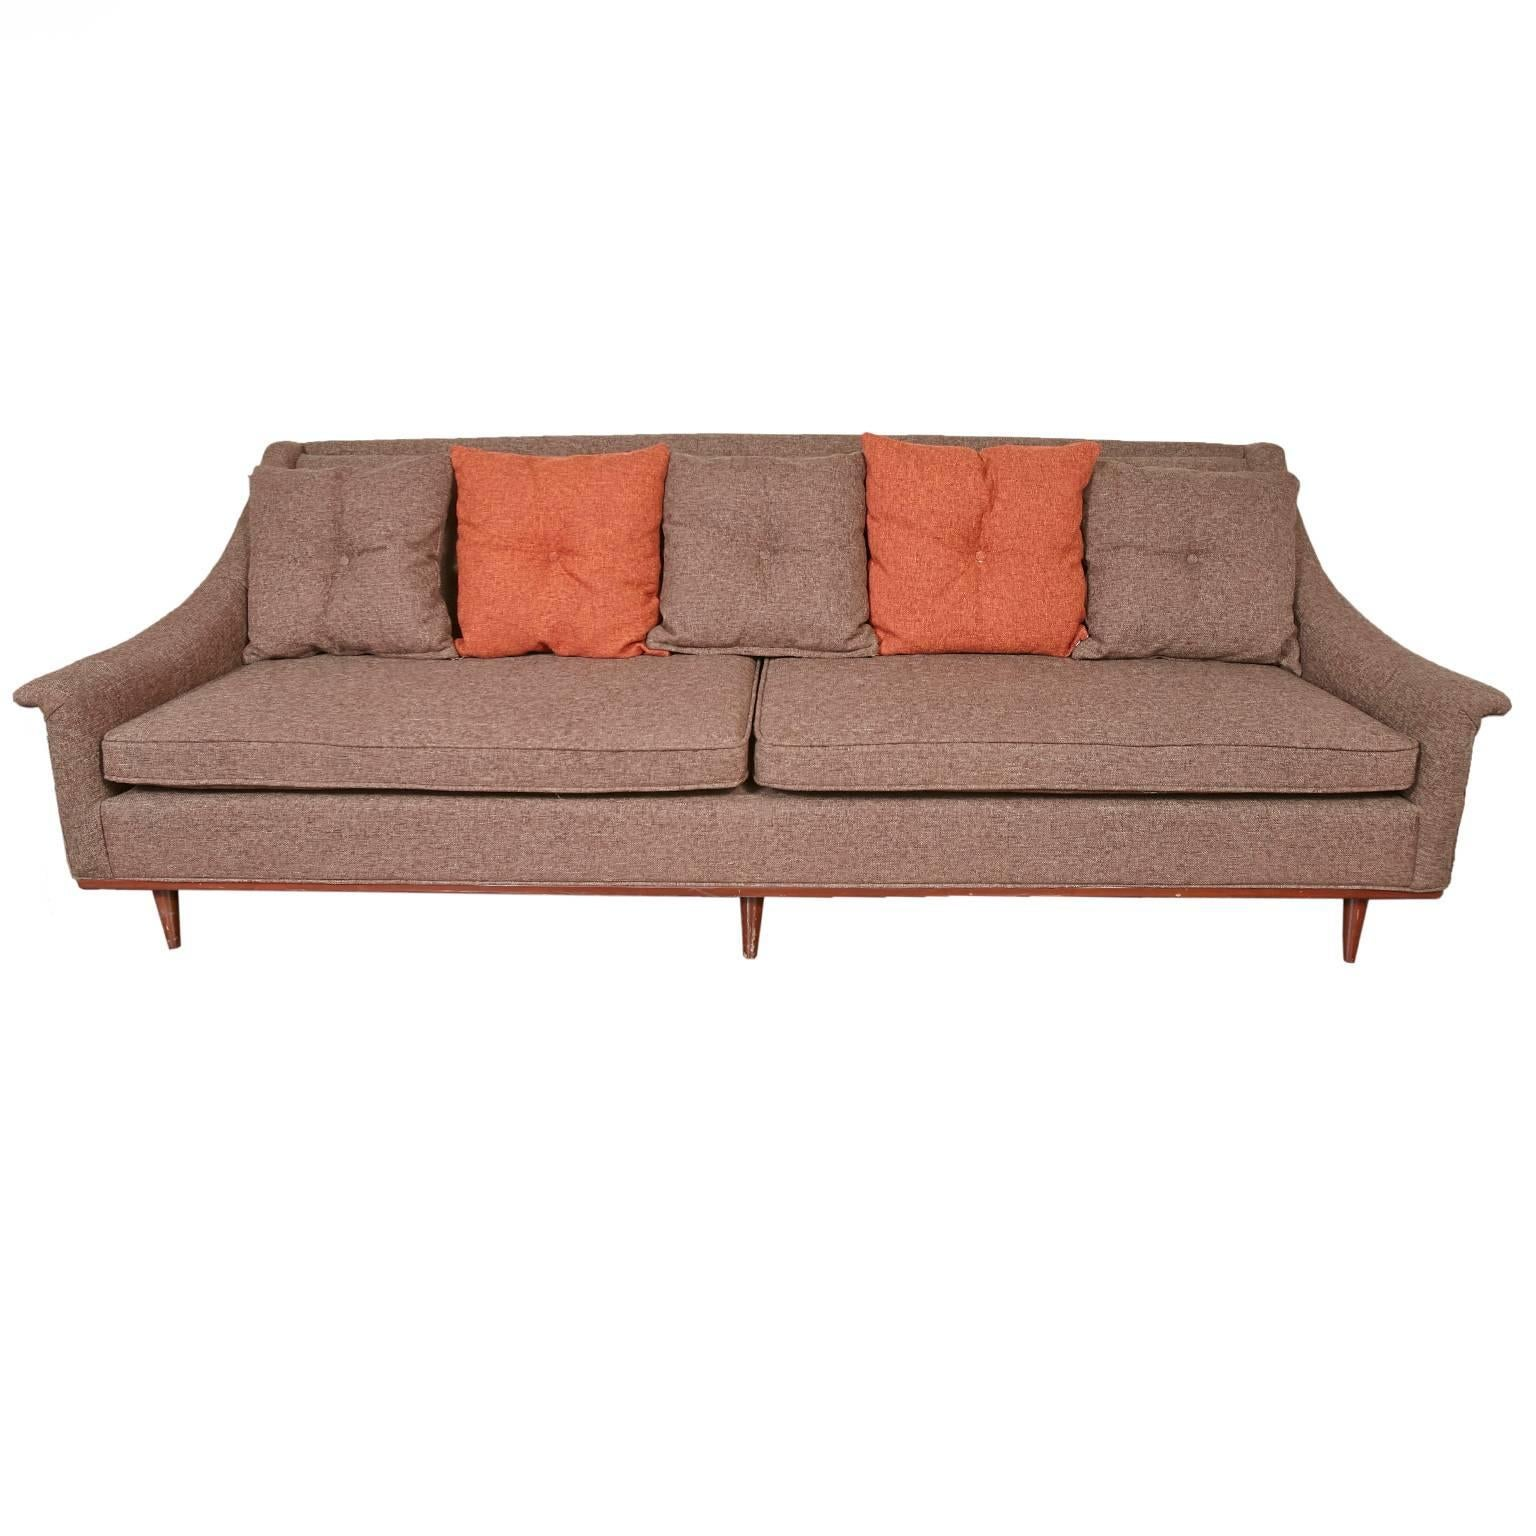 Selig Monroe Mid Century Modern Brown Textured Sofa For Sale